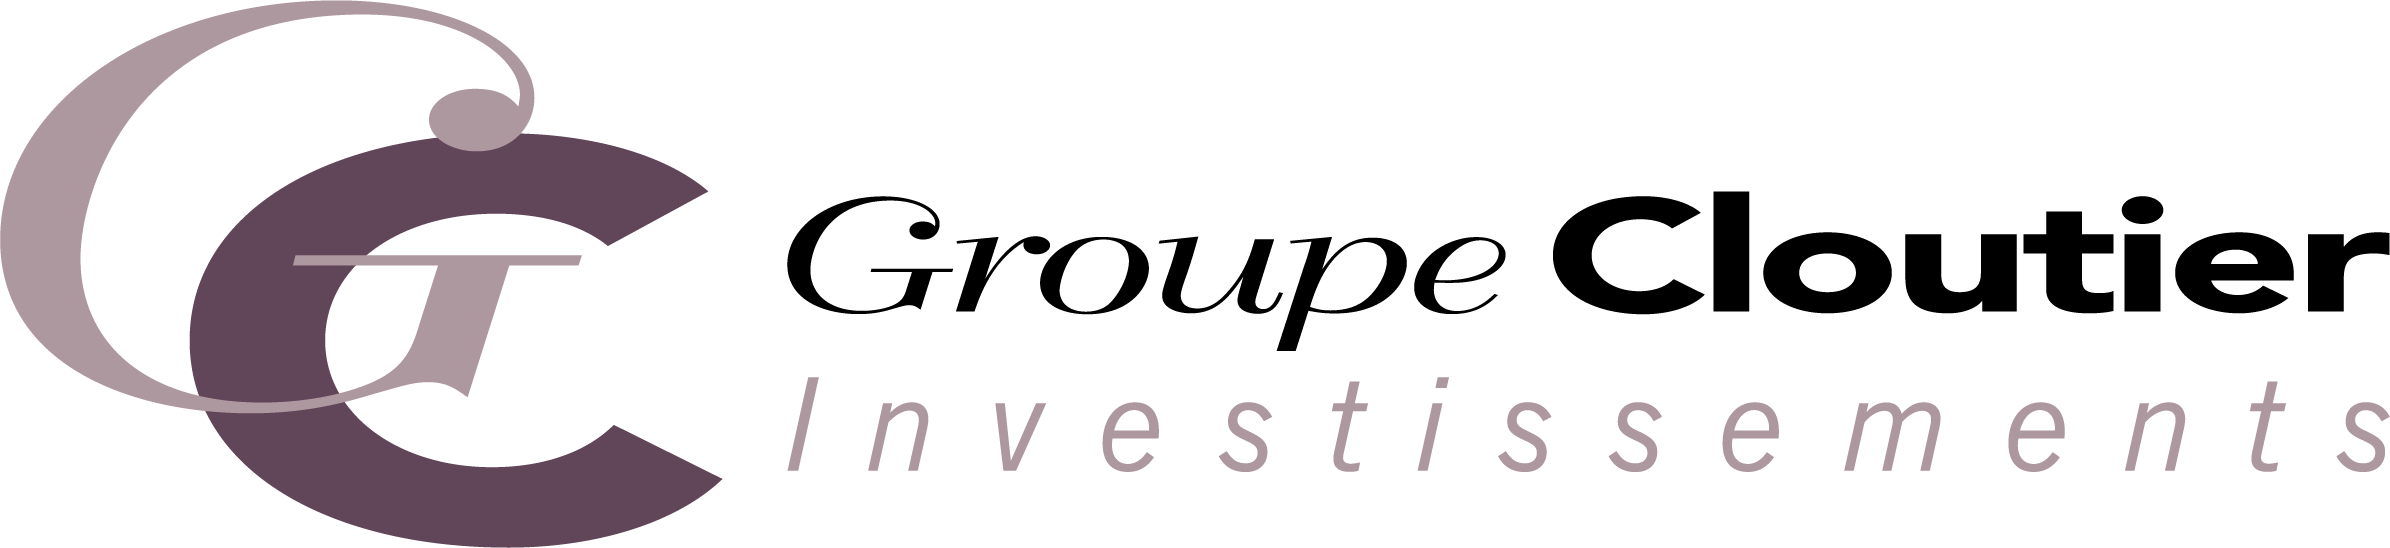 Groupe Cloutier Investissements - logo